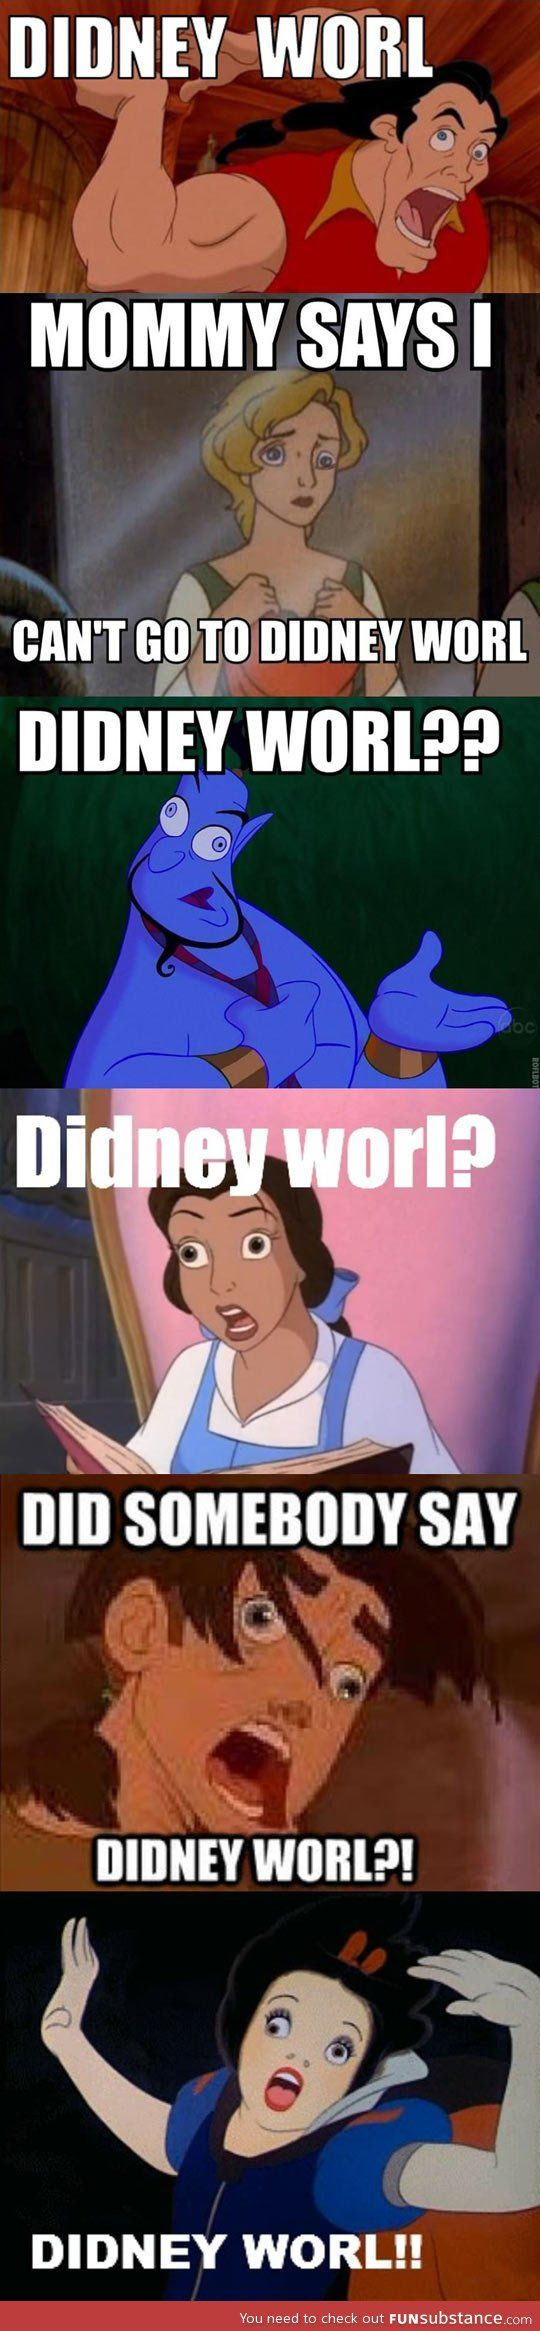 Didney worl <<< oh my word x)